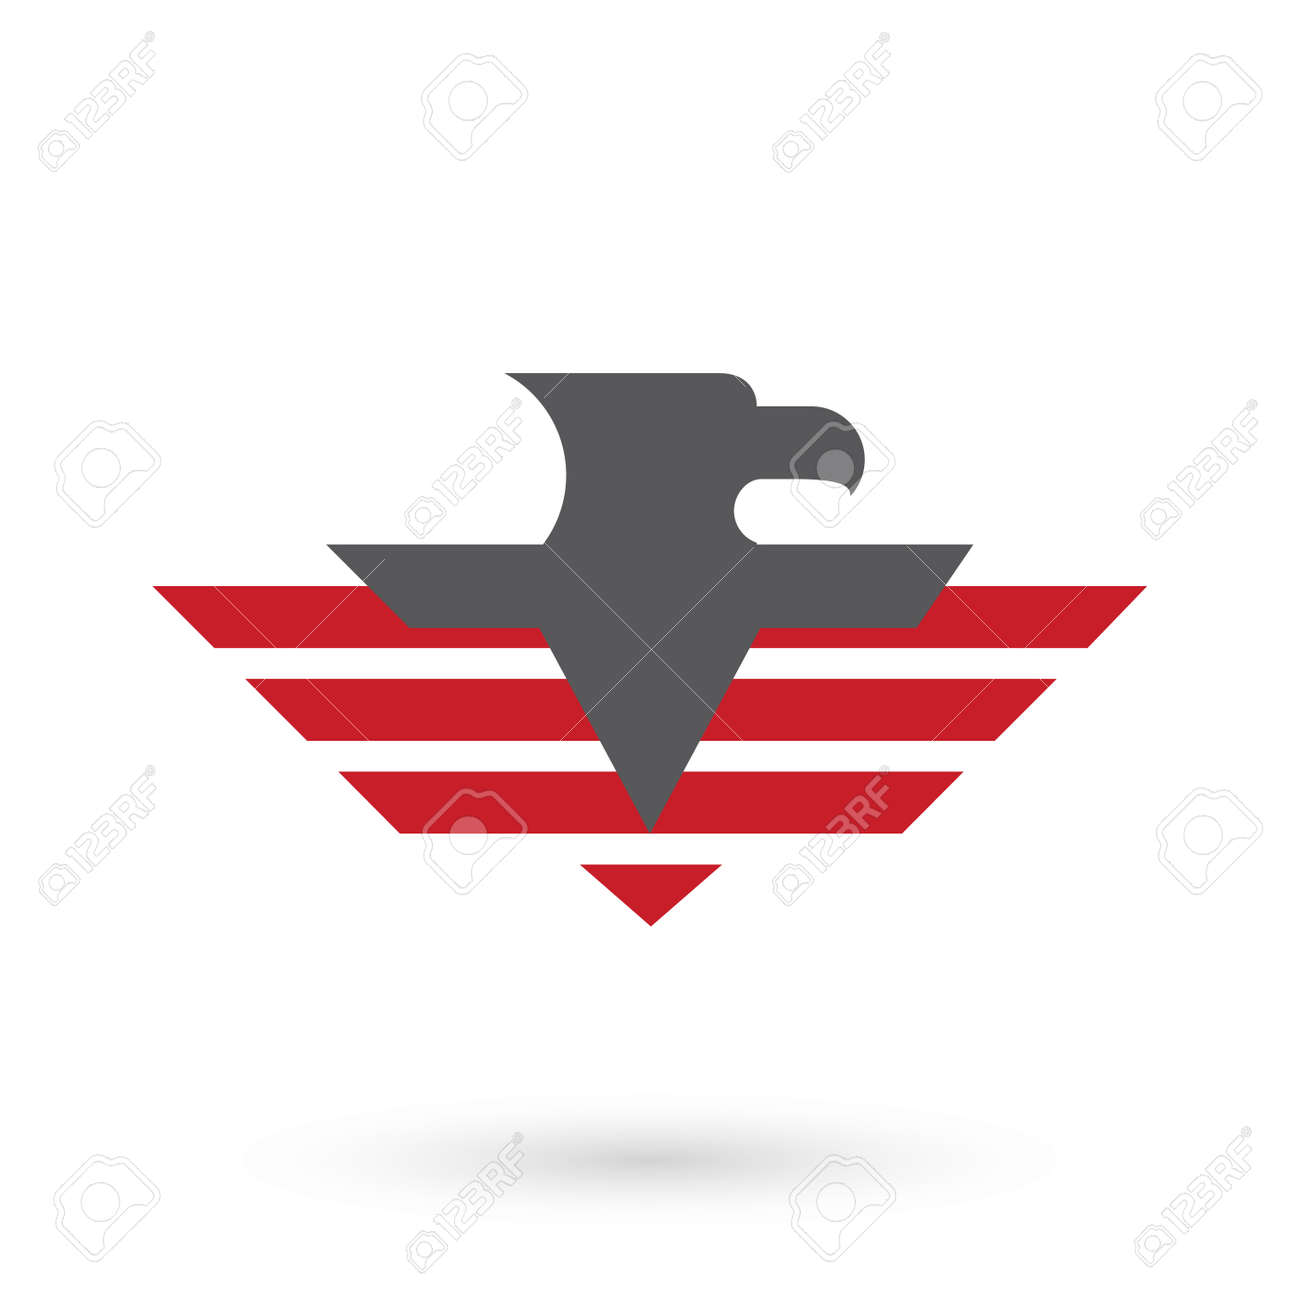 military logo template with eagle icon royalty free cliparts rh 123rf com military logo vector military logo vector